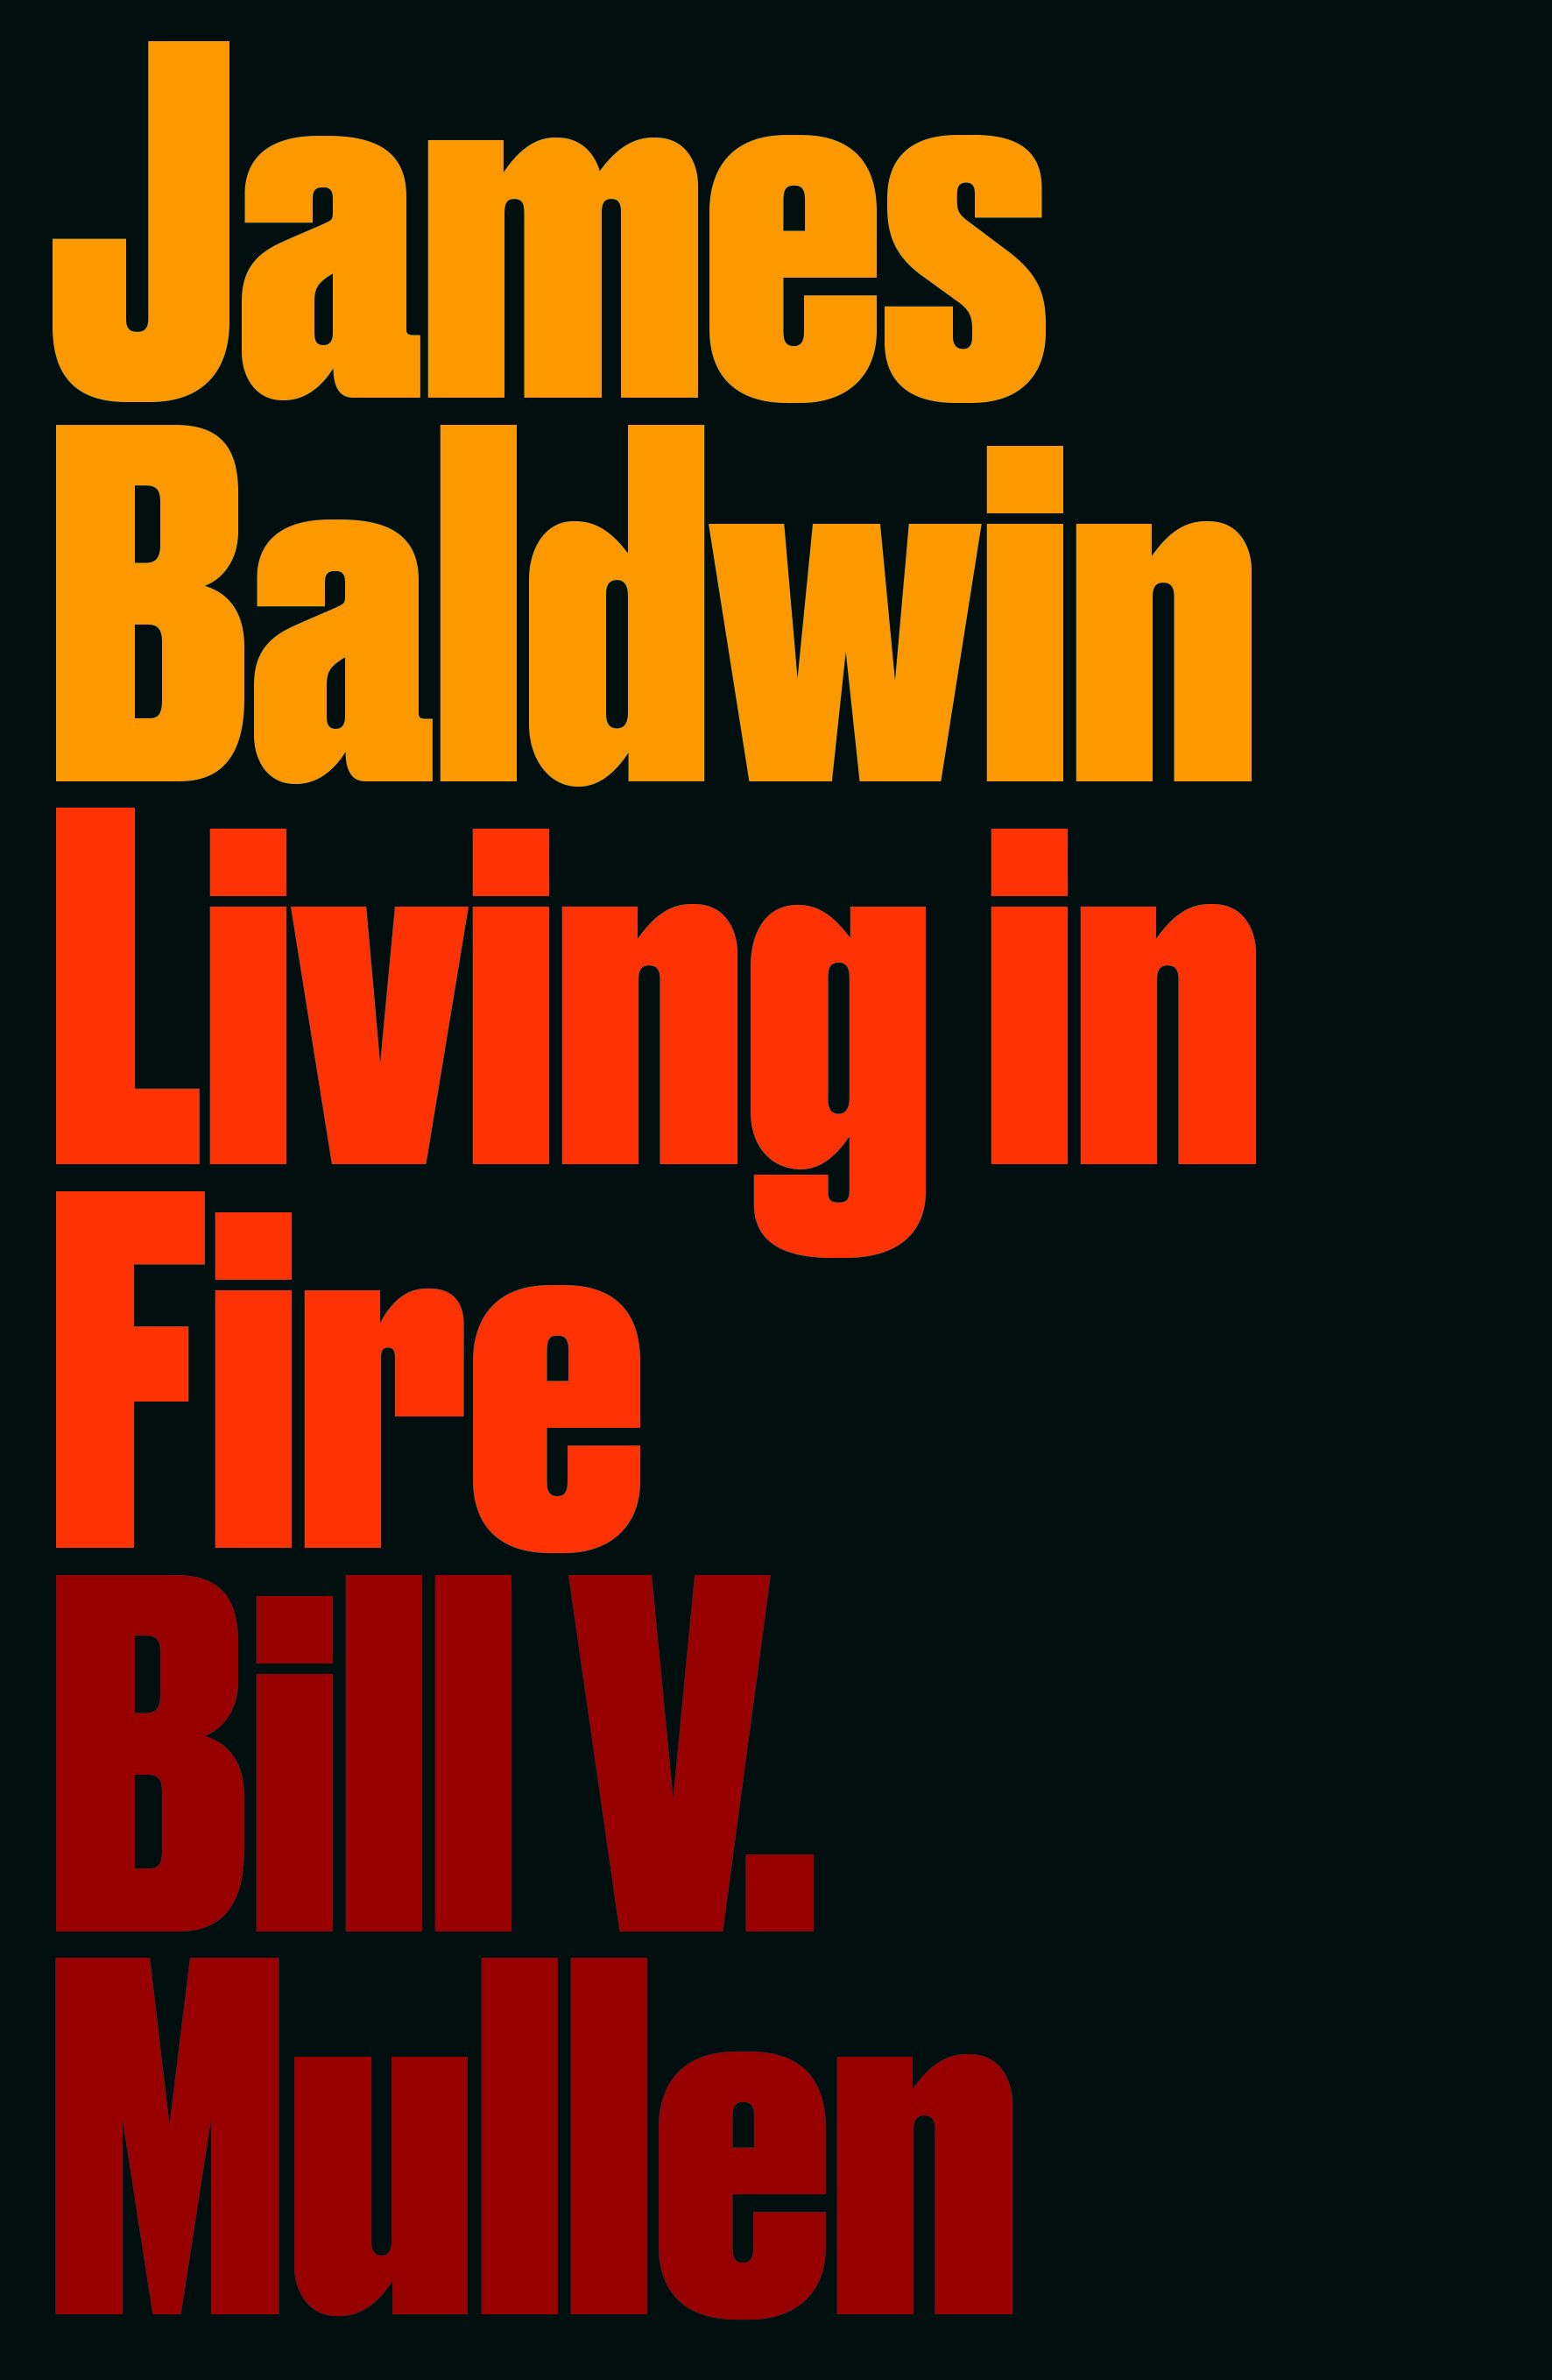 Mullen gives us a fresh view of an iconic American literary and revolutionary figure, particularly when it comes to his solidarity with Palestine – a dangerous and unpopular position at the time – which underscores the depth of Baldwin's courage and moral fortitude. This book is an essential contribution to the body of literature examining James Baldwin's extraordinary life.  (Susan Abulhawa, author of  Mornings in Jenin  (Bloomsbury, 2010), founder of Playgrounds for Palestine)   Finally, Bill V. Mullen presents the James Baldwin we've been waiting for: the revolutionary, fierce internationalist, queer theorist, anti-imperialist, anti-Zionist, incisive dialectician, and perhaps the most dangerous thinker of the 20th century. If you want to know the real Baldwin, the uncompromising critic and visionary realist possessed of Fanonian optimism, Gramscian pessimism, and Lordean love, this is the book to read, the book we desperately need.  (Robin D. G. Kelley, author of  Thelonious Monk: The Life and Times of an American Original  (Free Press, 2008)   A truly fresh, exciting, comprehensive biography that richly appreciates Baldwin's profound relevance both historically and in this moment.  (Michele Elam, William Robertson Coe Professor, Stanford University, author of  Race, Work and Desire in American Literature 1860-1930  (Cambridge University Press, 2003)   This book is a revelation. Digging through the archives, Bill Mullen uncovers a James Baldwin drenched in radical commitments—a literary revolutionary seized by the fierce urgency of now. The Baldwin who erupts from these pages is a black queer internationalist, creating masterpieces, raging against oppression and aligning himself with the wretched of the earth. Here is a Baldwin who speaks powerfully to our times. But more than this, Mullen gives us a Baldwin who points us toward emancipated futures.  James Baldwin: Living in Fire  is truly a superb book—and one we urgently need. --(  David McNally, Cullen Disting